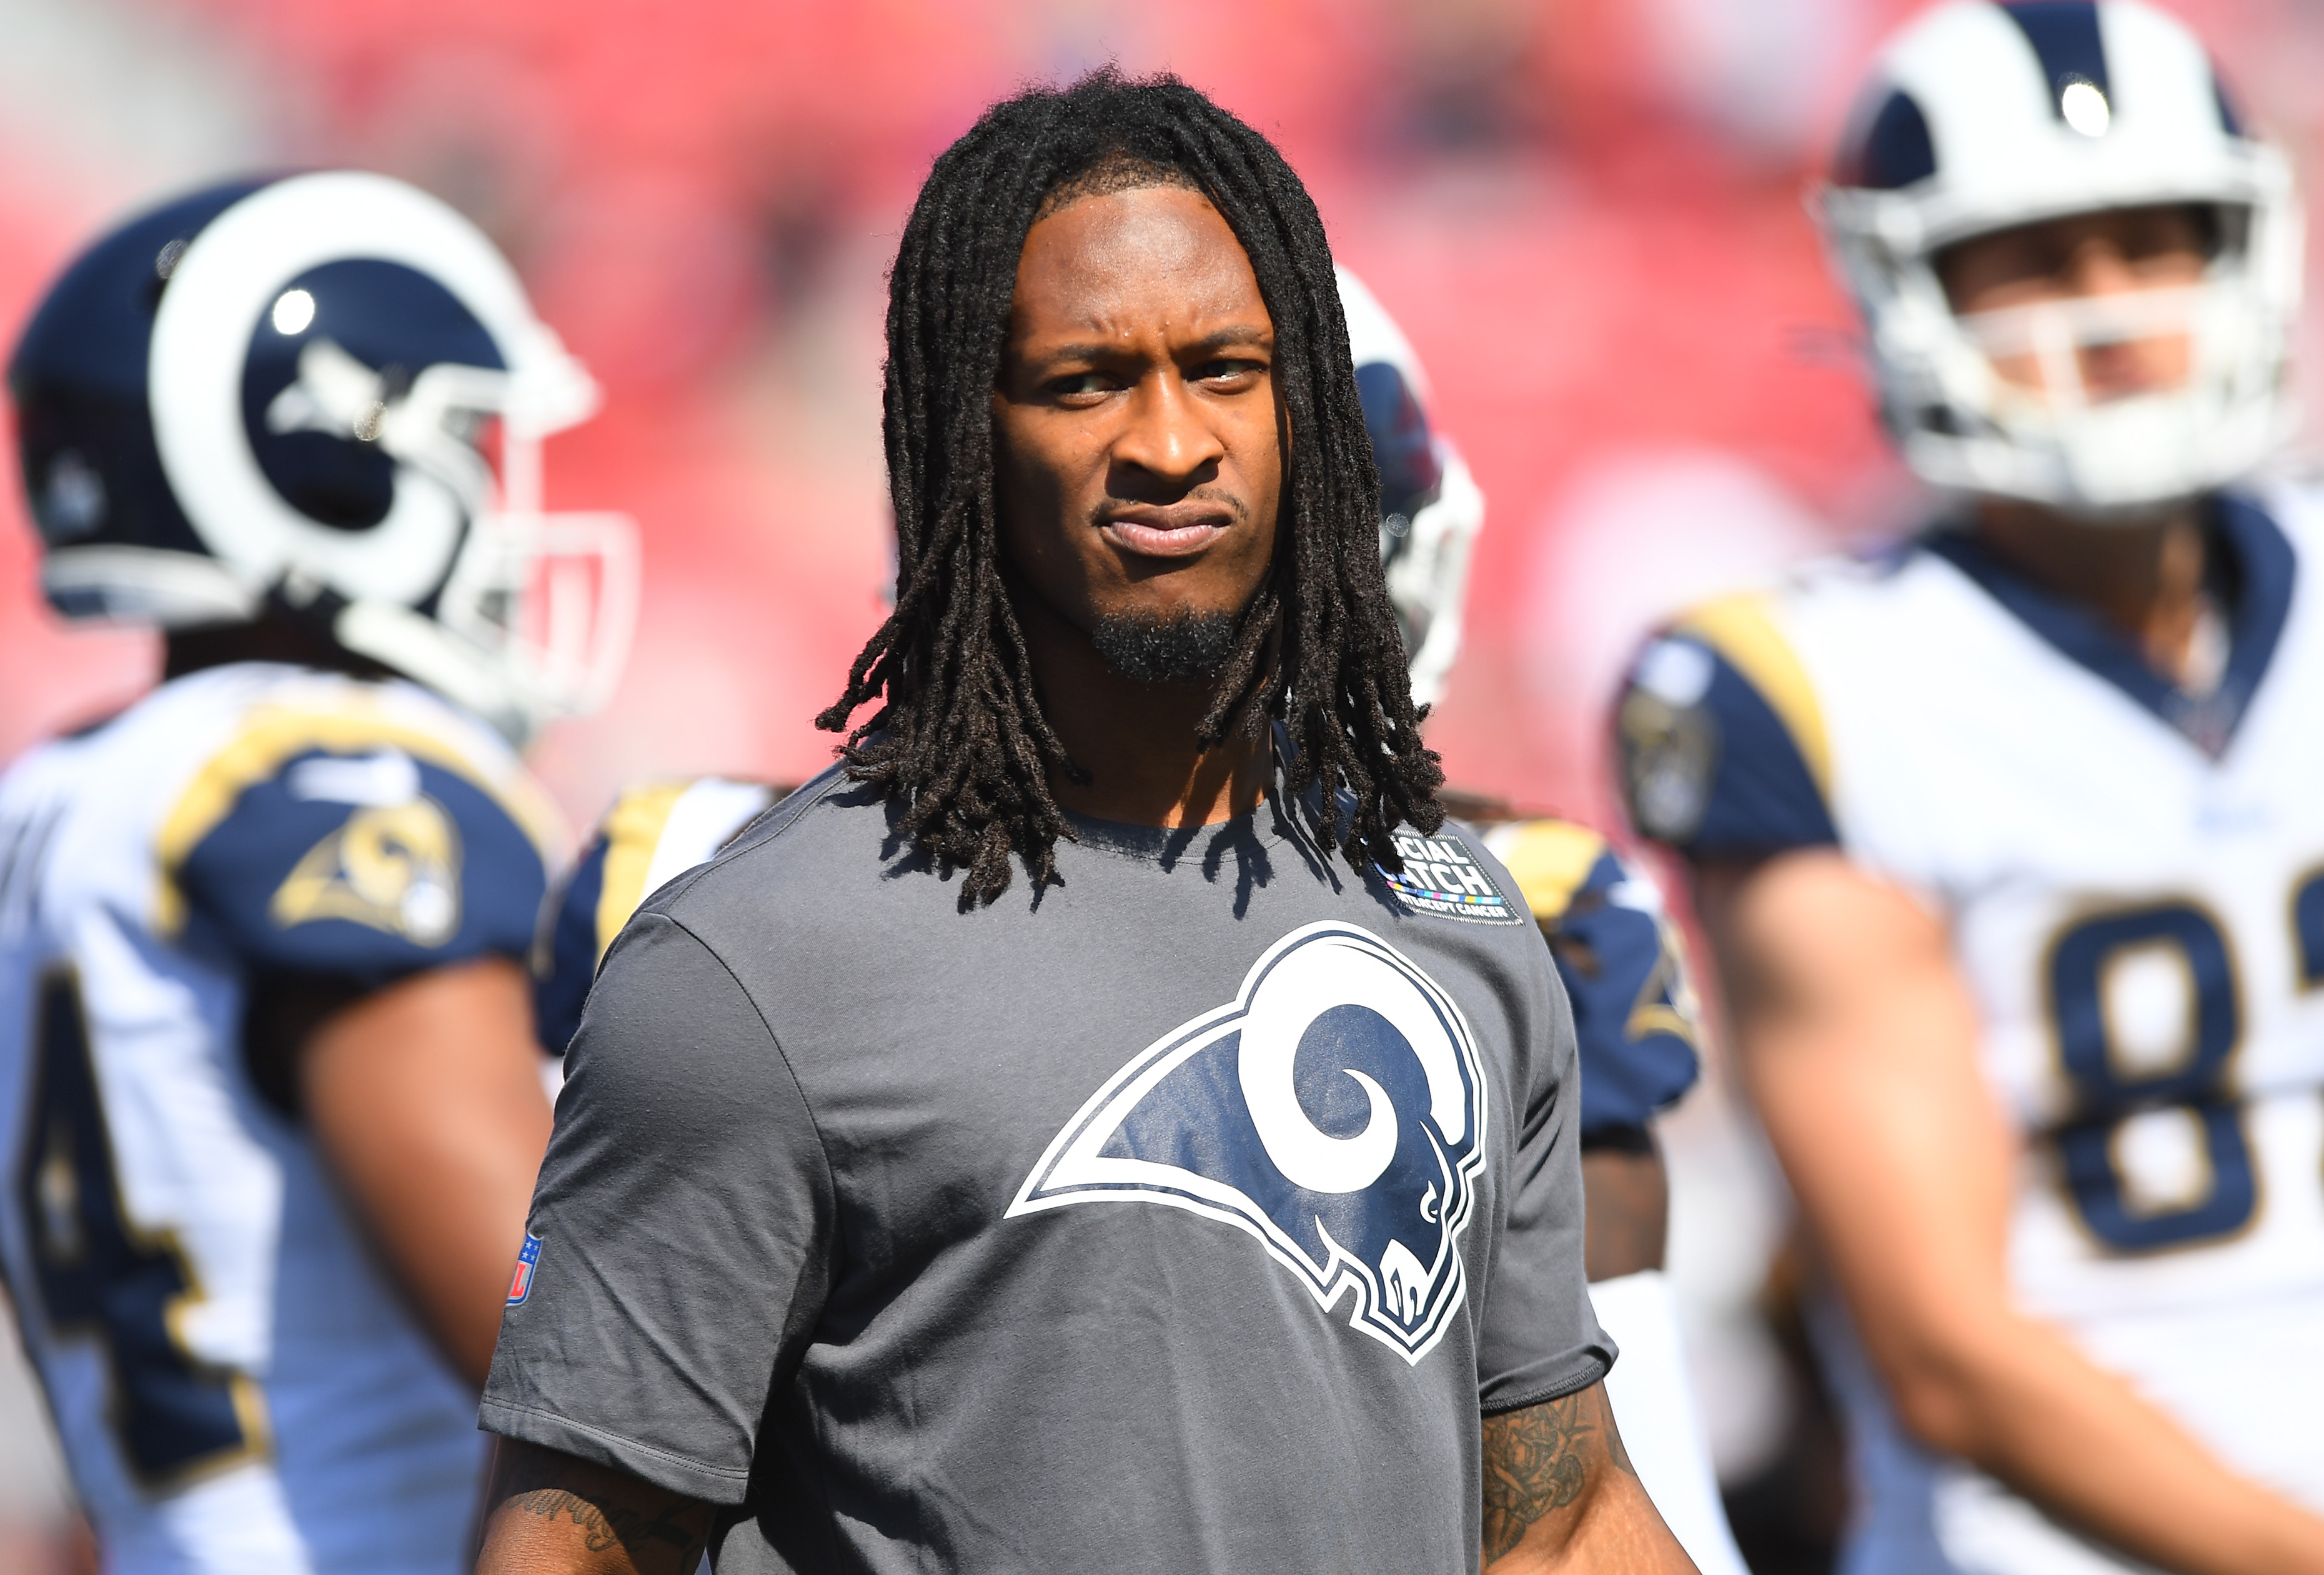 Los Angeles Rams RB Todd Gurley during warmups prior to a Week 6 game against the San Francisco 49ers, Oct. 13, 2019.